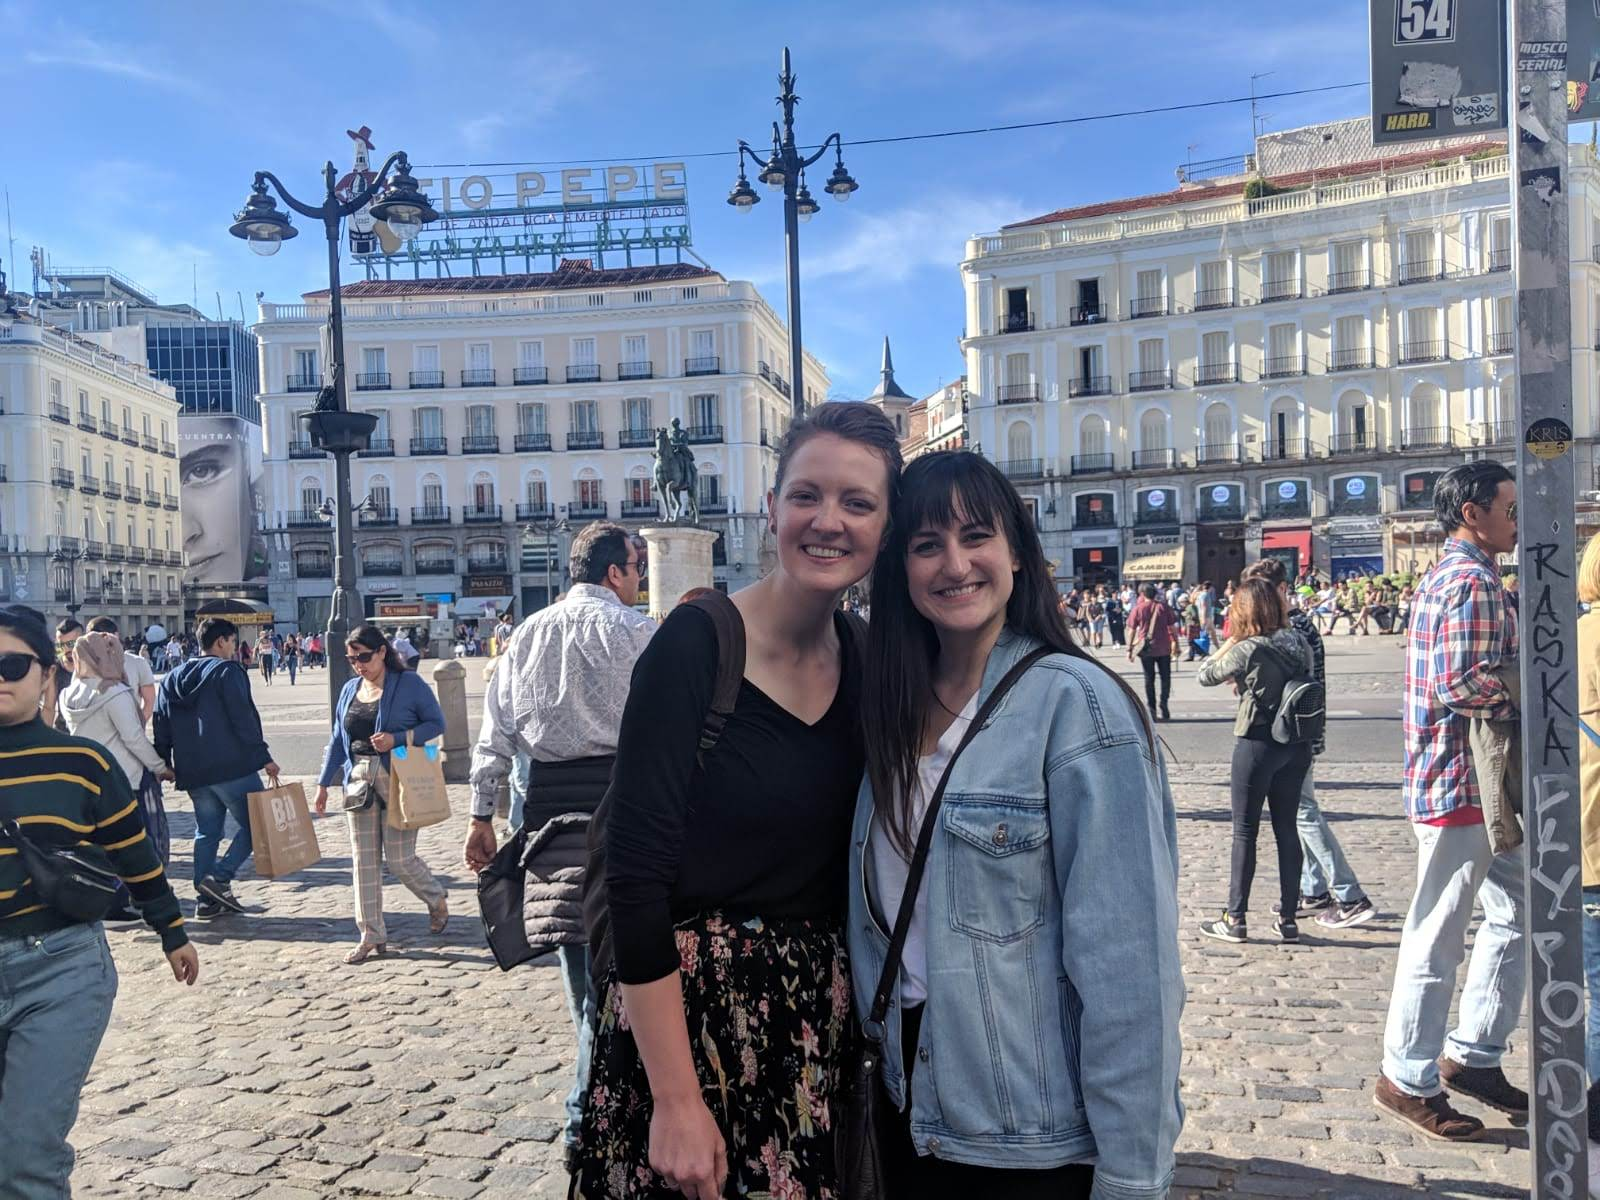 Met up with another dear friend from childhood, Susie. We spent some quality time downtown Madrid.